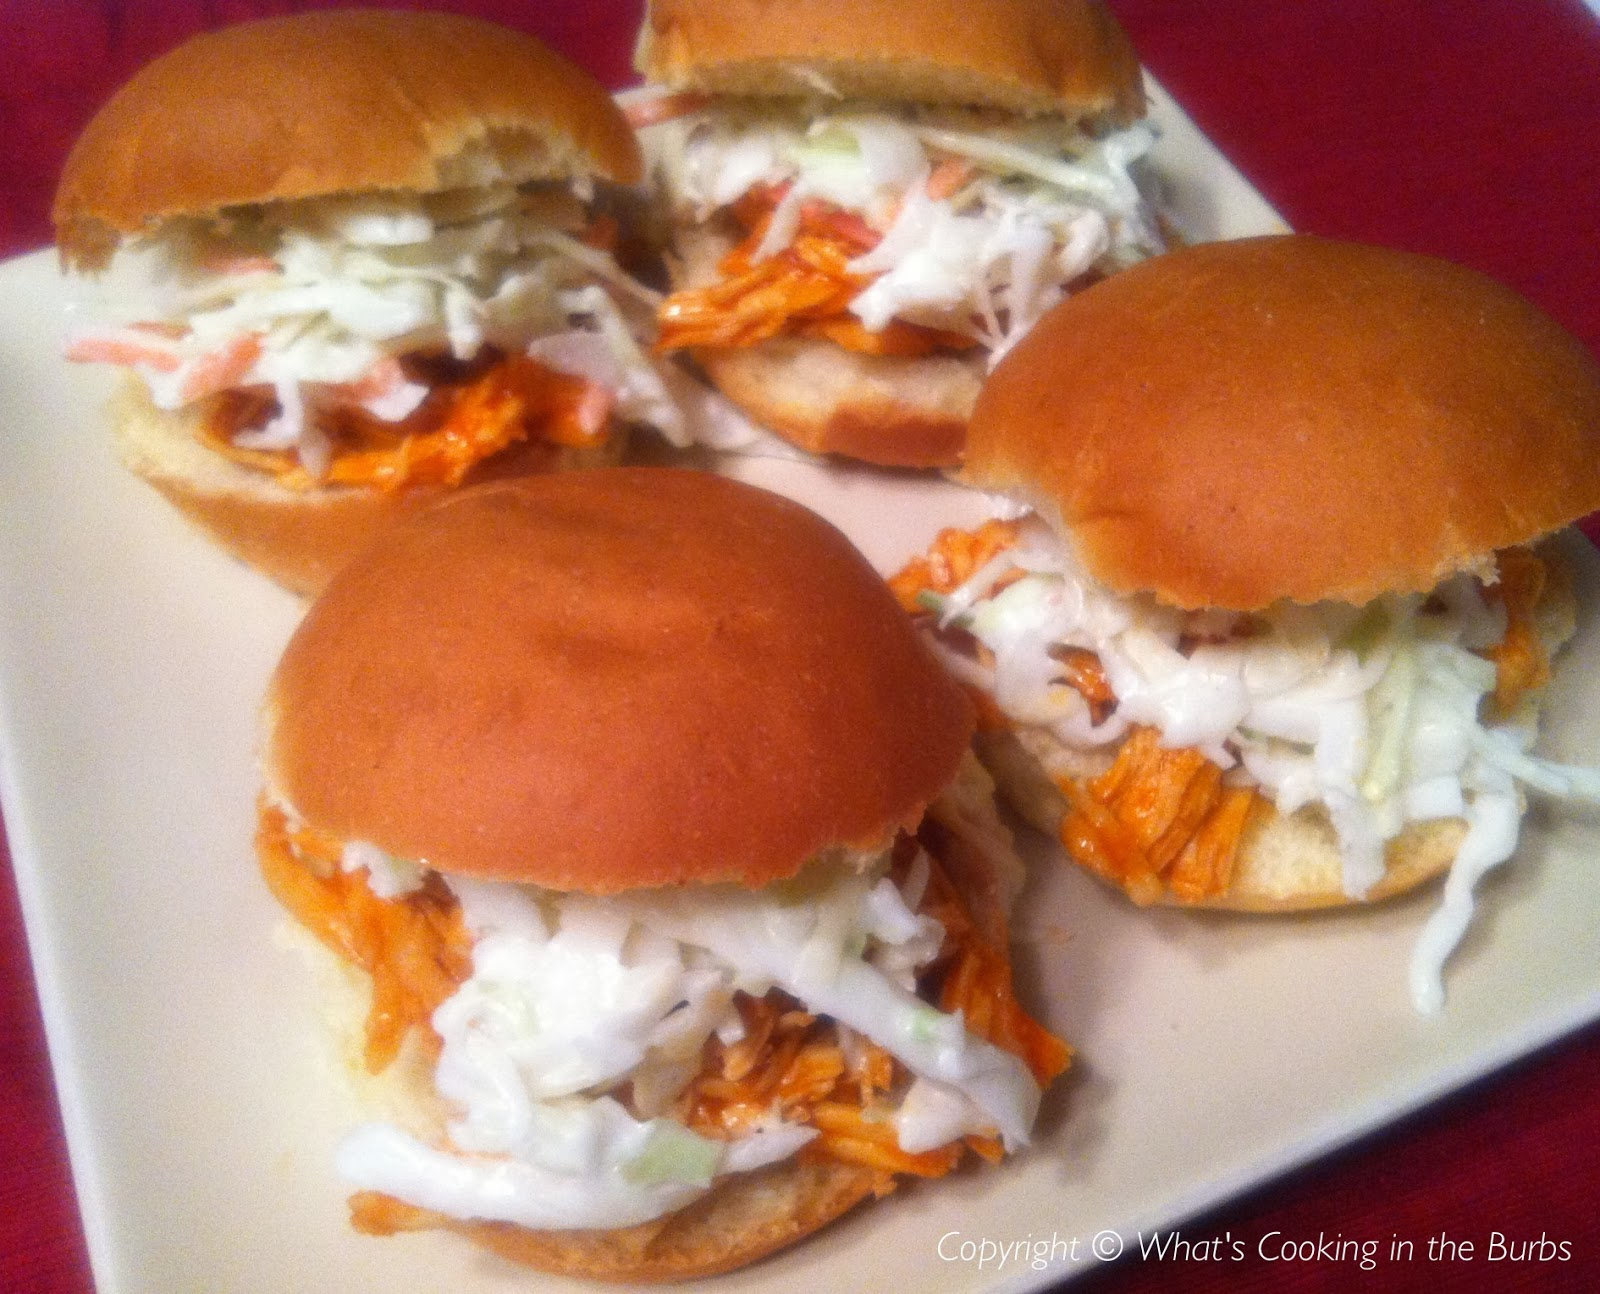 ... Cooking in the Burbs: Buffalo Chicken Sliders with Cool Ranch Slaw